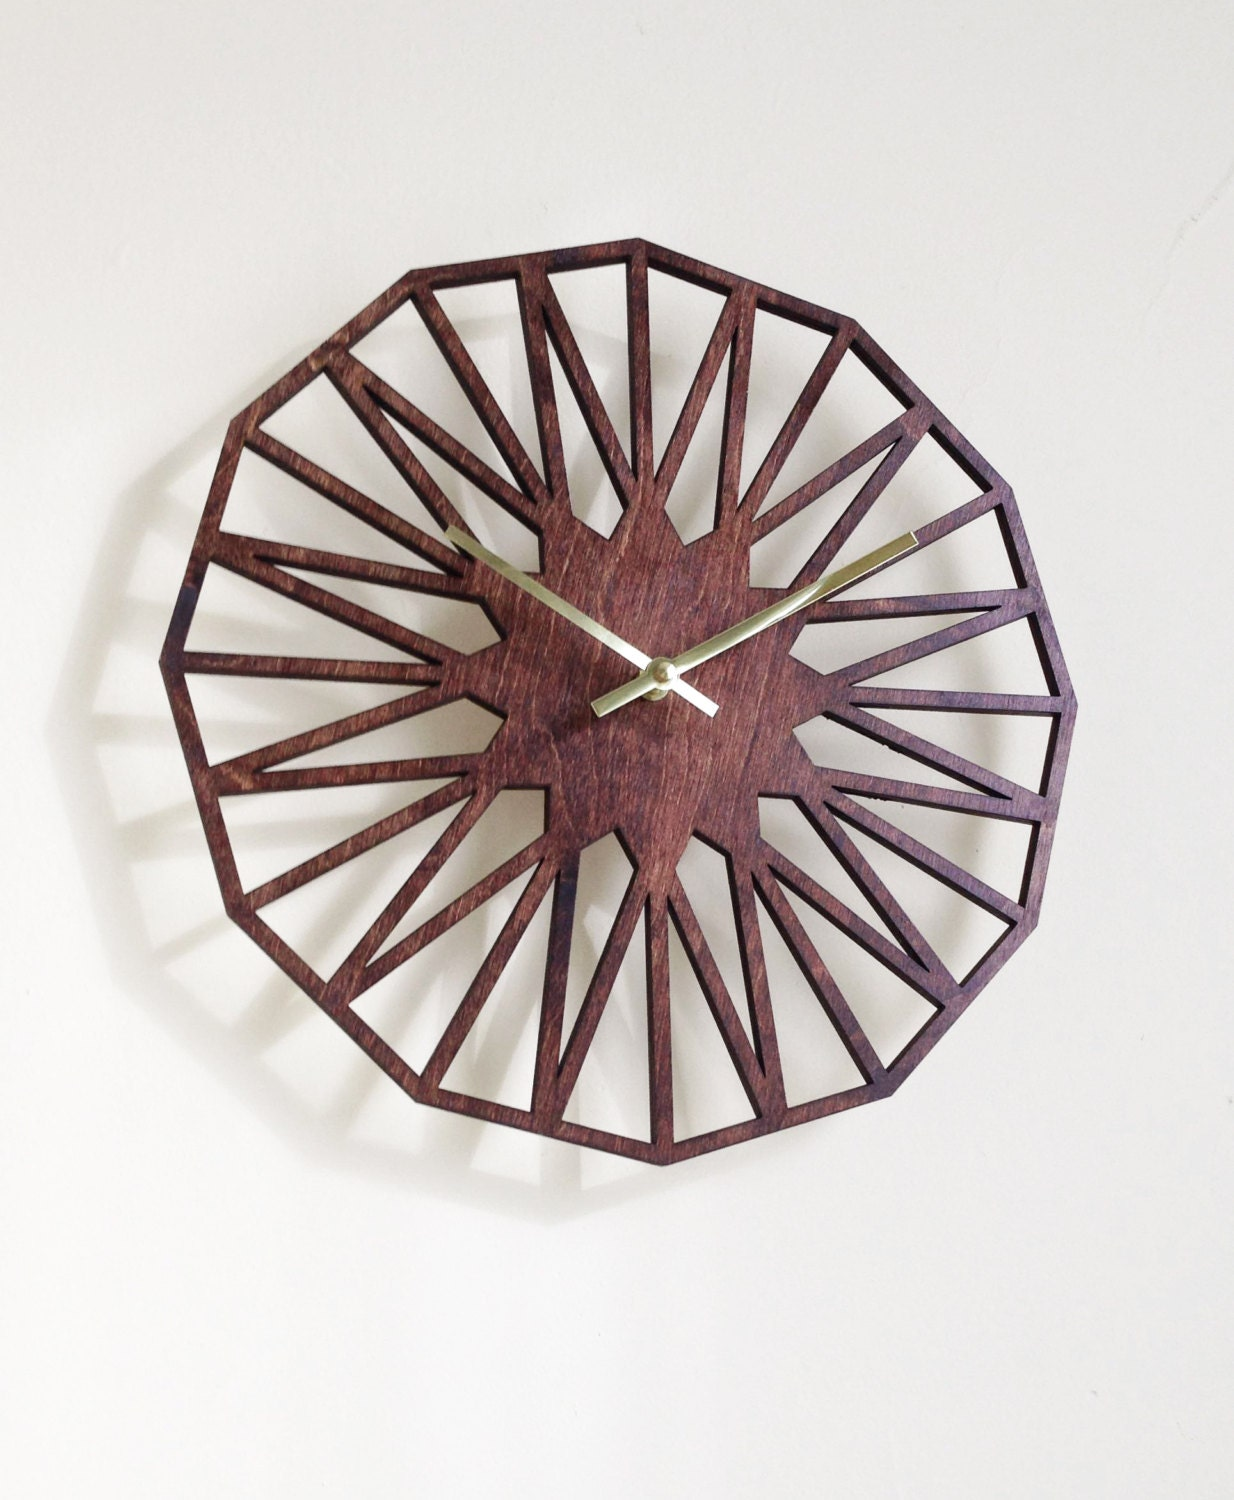 12 star wall clock laser cut modern geometric mid zoom amipublicfo Image collections